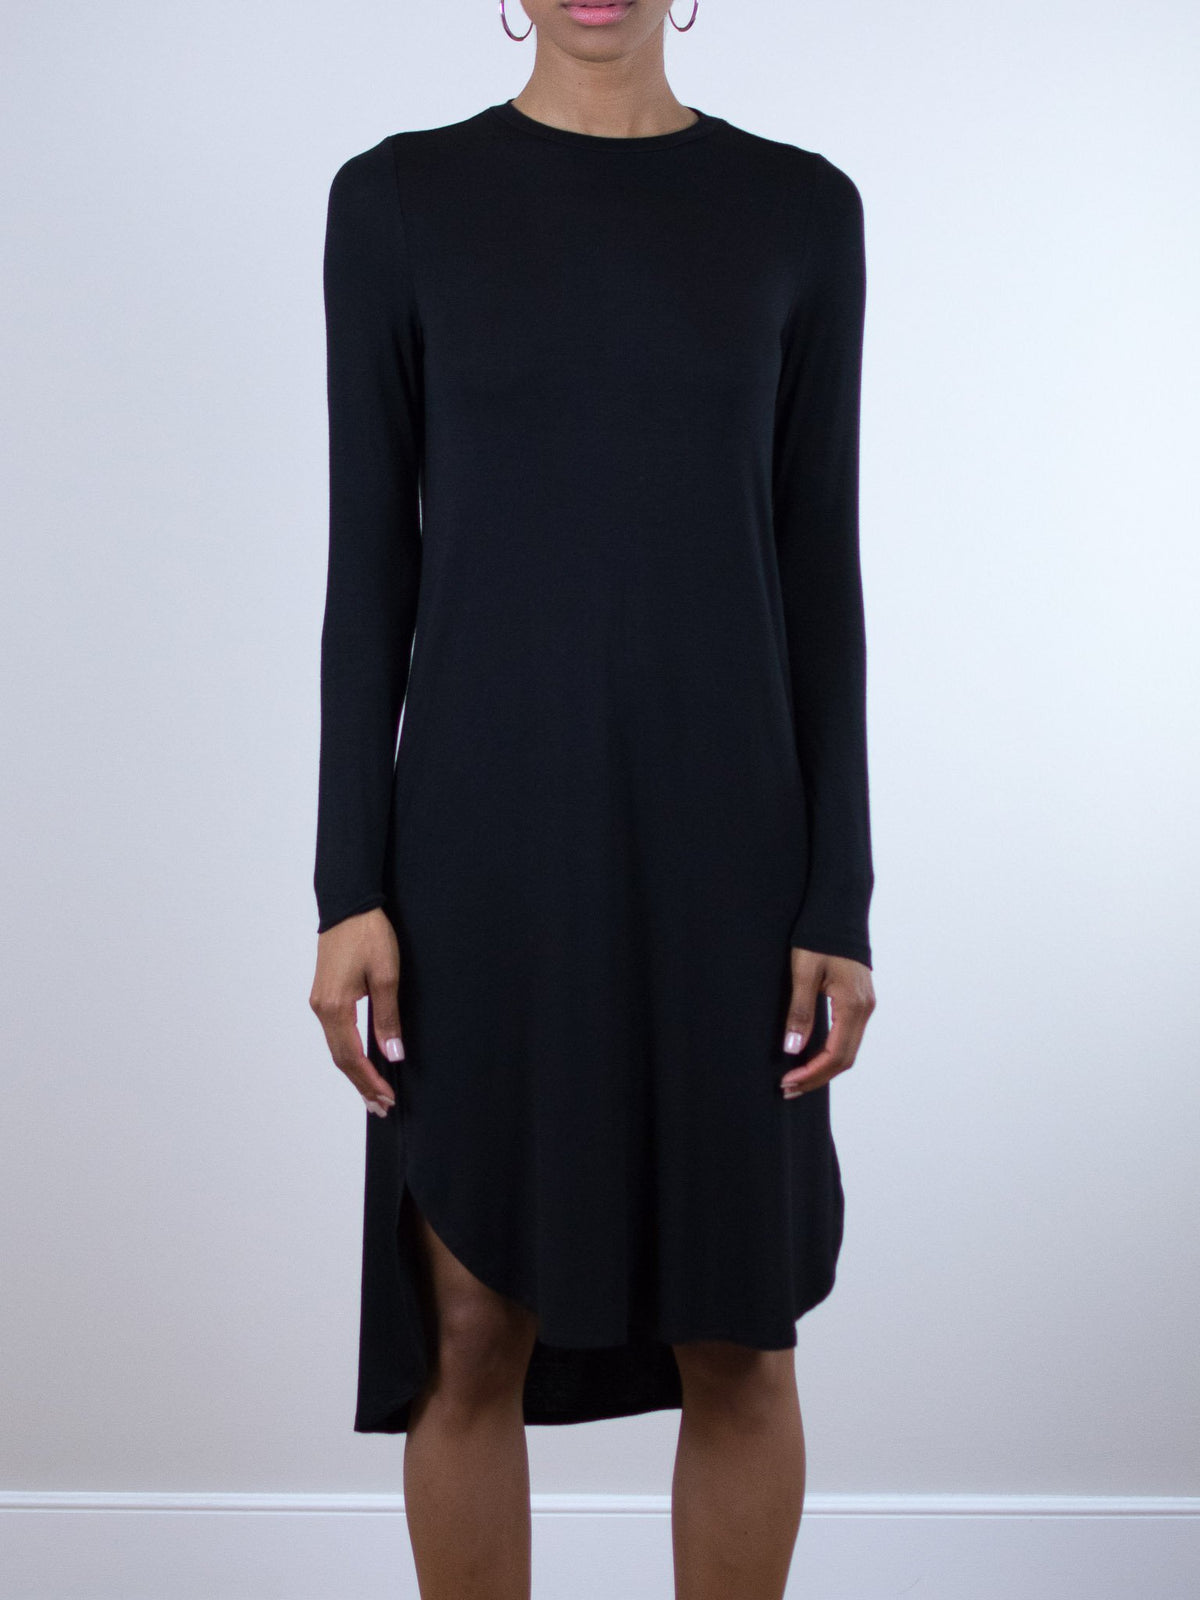 BLQ Basiq Black Long Sleeve Loose Dress - MissionEdit